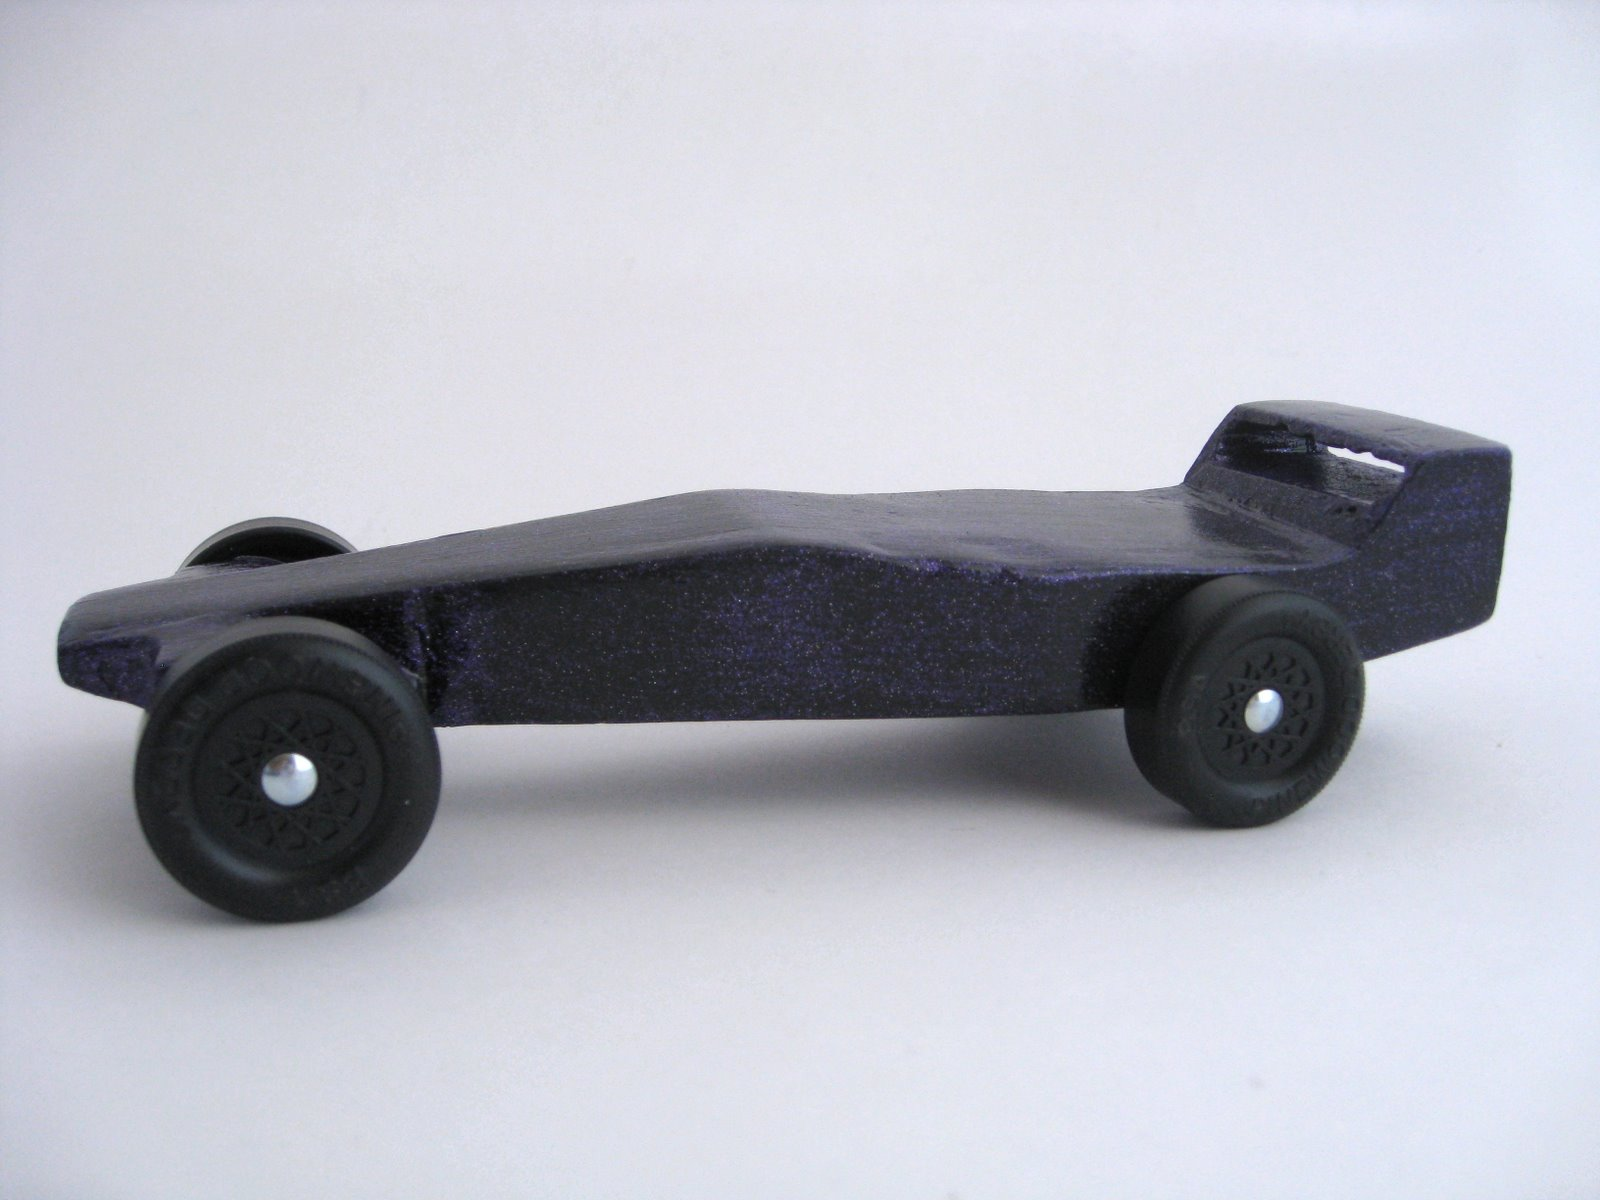 Basic design of a car - Steve Went For A Much More Impressive Design Using Only The Very Basic Tools We Have Here I Can T Believe He Managed Such Complicated Cuts Without The